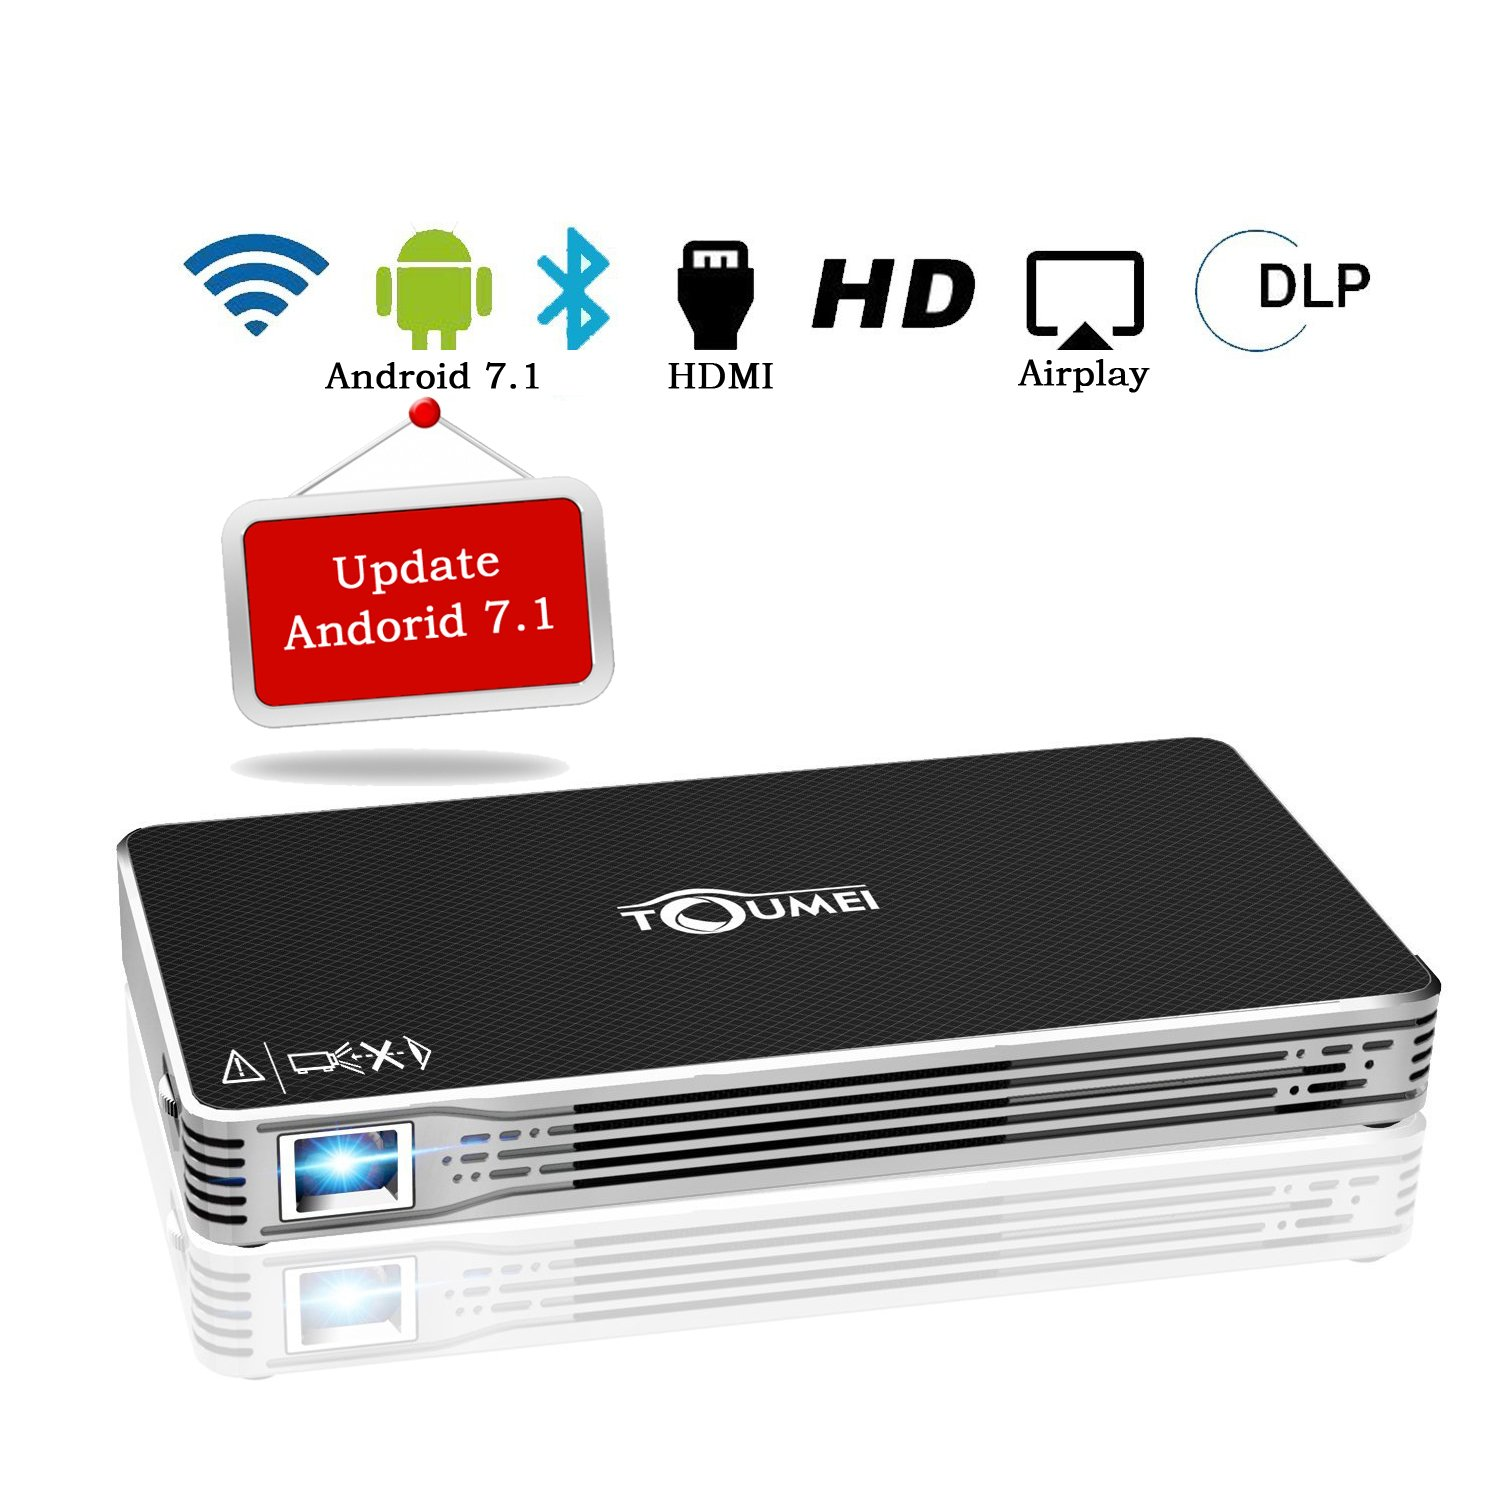 Projectors,TOUMEI Mini Portable Android 7.1 Video Projector Max Throw 120'' Display,Smart Mobile Projector Support Bluetooth,Wifi,HDMI,USB,TF Card and Audio for iPhone,iPad and Laptop